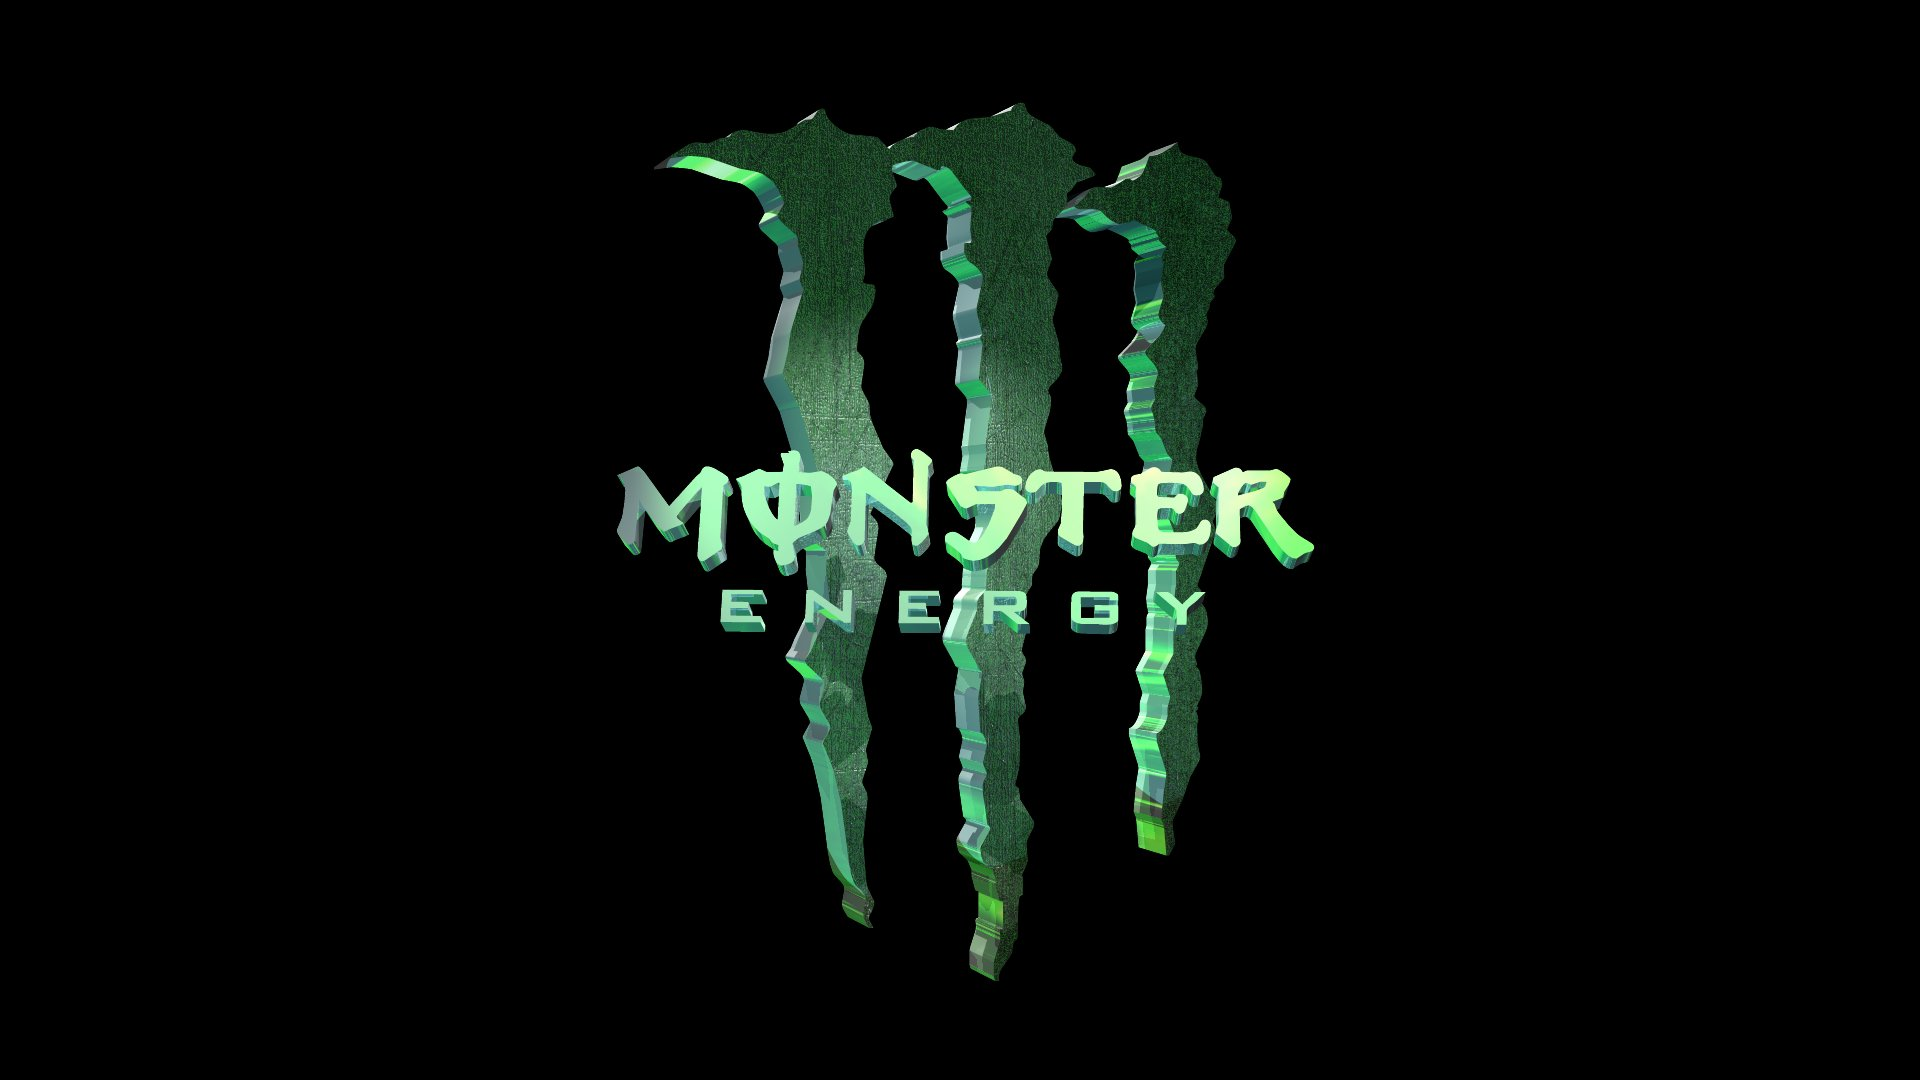 3D Monster Energy   MONSTER ENERGY DRINK Wallpaper 23885321 1920x1080